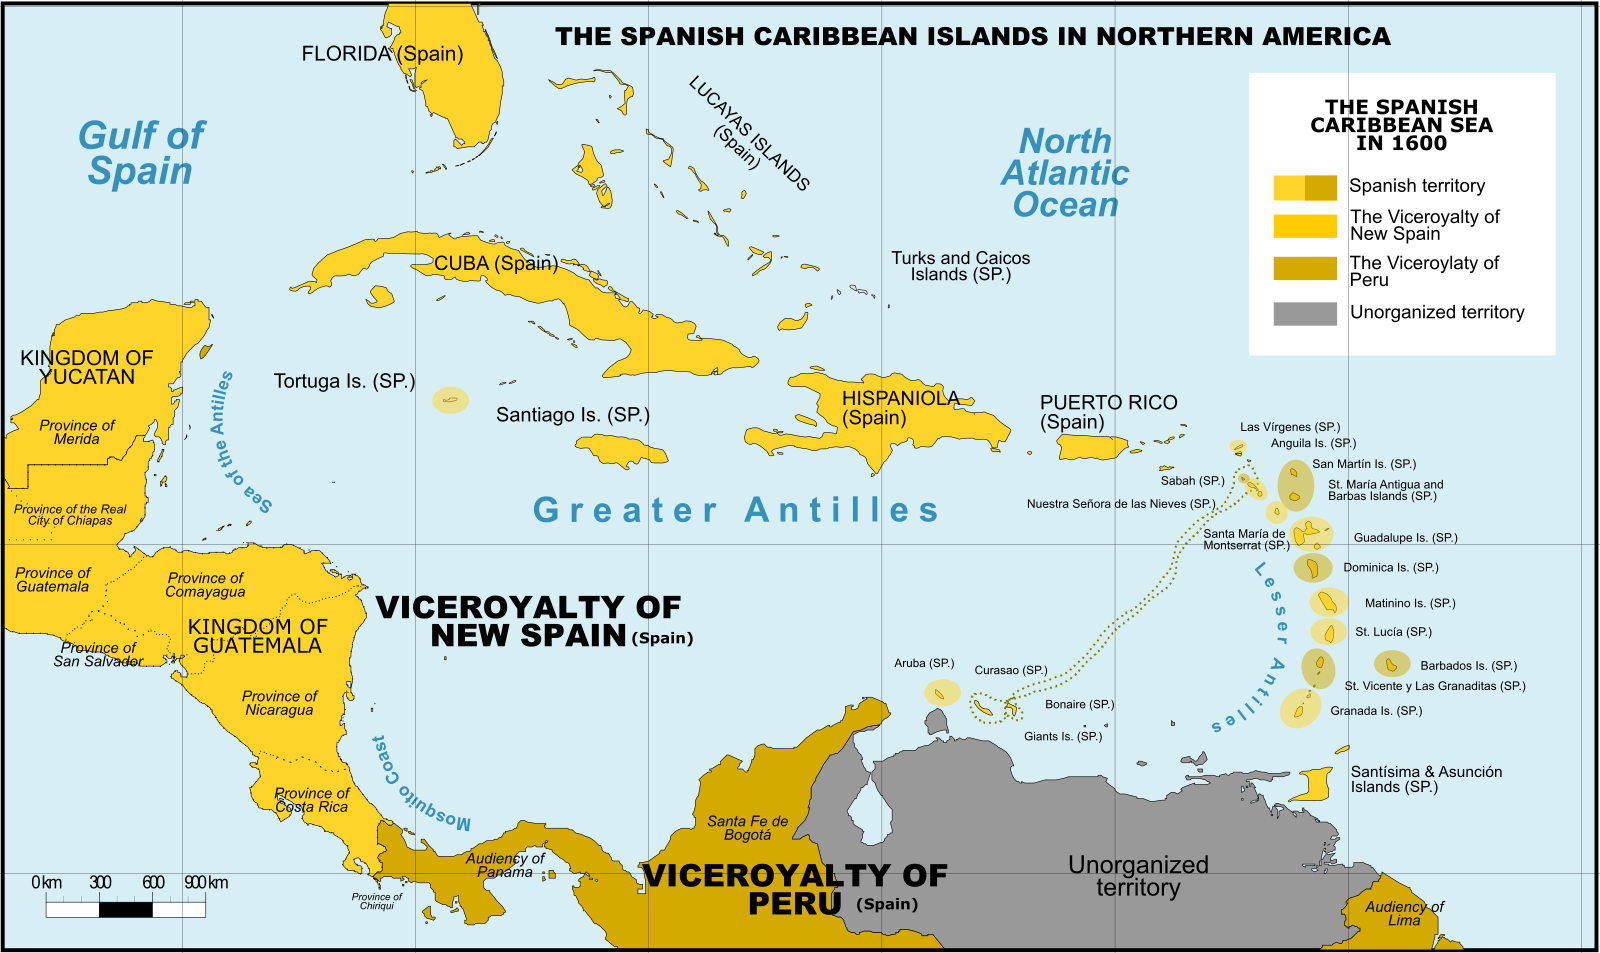 Filespanish caribbean islands in the american viceroyalties 1600 filespanish caribbean islands in the american viceroyalties 1600g gumiabroncs Image collections